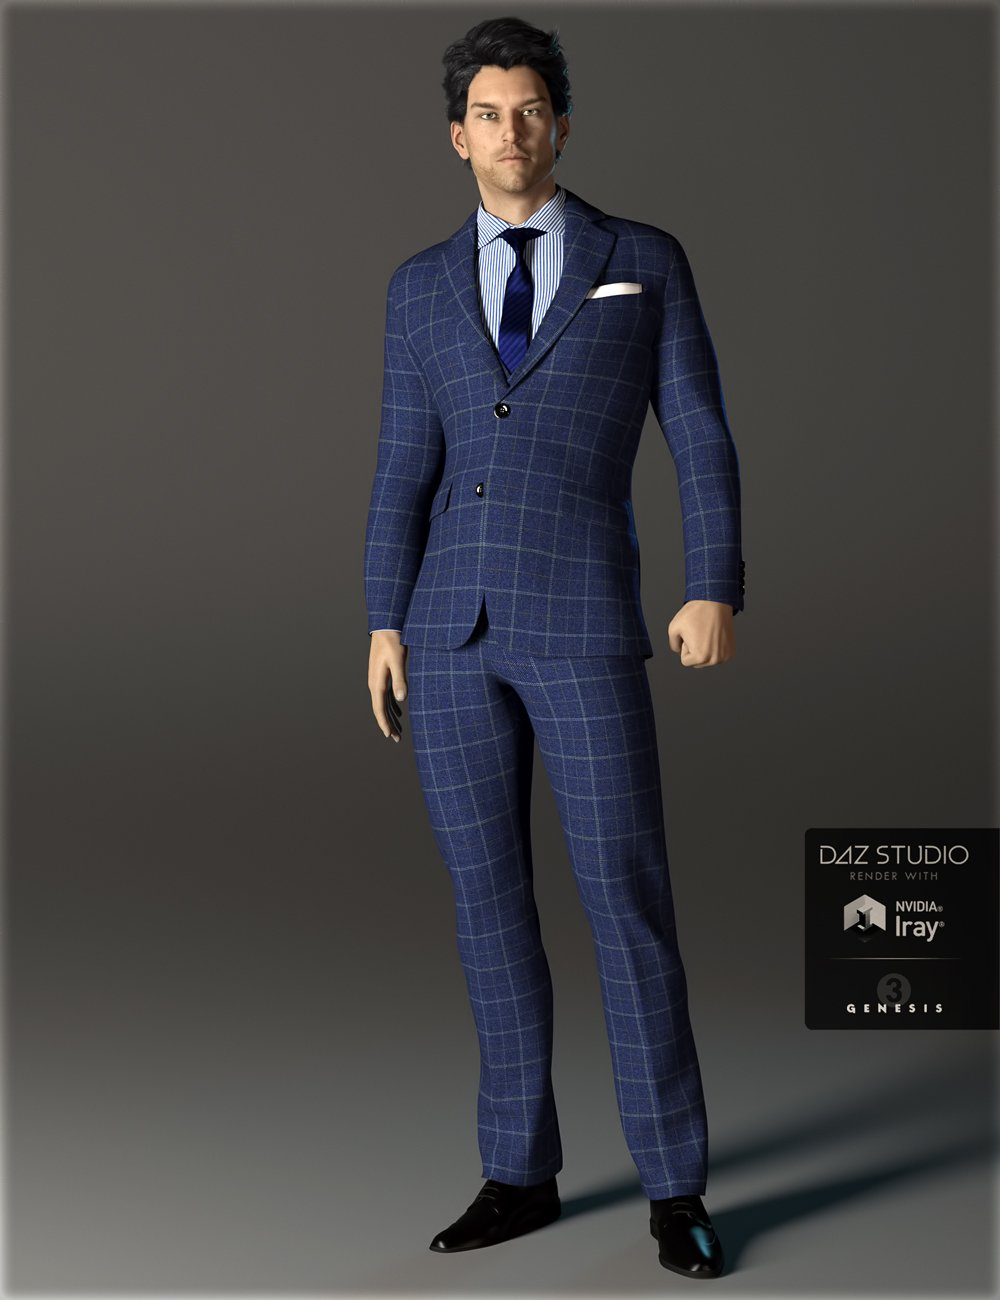 H&C Business Suit A for Genesis 3 Male(s) by: IH Kang, 3D Models by Daz 3D